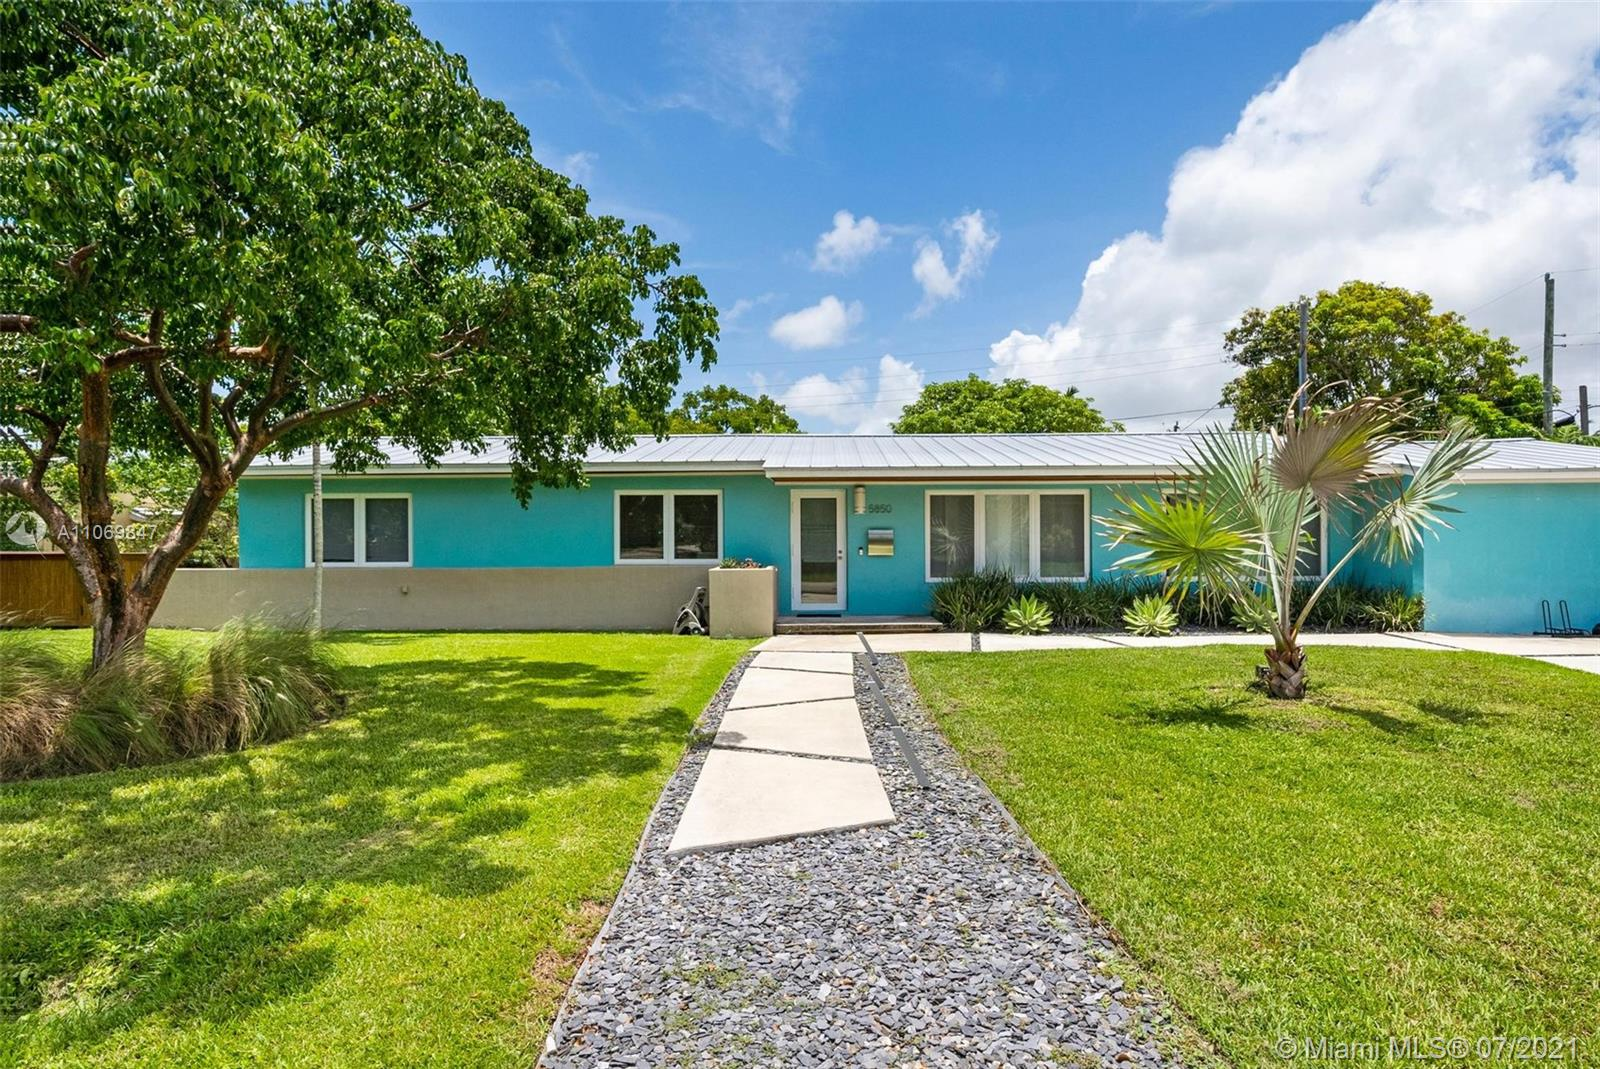 This move-in ready, mid-century home is tastefully updated while respecting the beauty of its original architecture. Plenty of space to entertain, inside & out. The bright home features impact windows & doors that let in natural light, highlighting original, refinished terrazzo floors as well as a remodeled kitchen & bathrooms. On this expansive 12,199 sq ft lot also sits a heated pool & detached wood pergola, flanked by a bamboo fence on all sides for privacy. Garage was recently converted to include AC (mini split), added storage & laundry area; perfect for an in-home office, guest room or gym. Added bonus; gas line which is currently connected to gas water heater. Just a short walk from Brewer Park & near the University of Miami, Baptist Health South Miami Hospital, shops & restaurants.